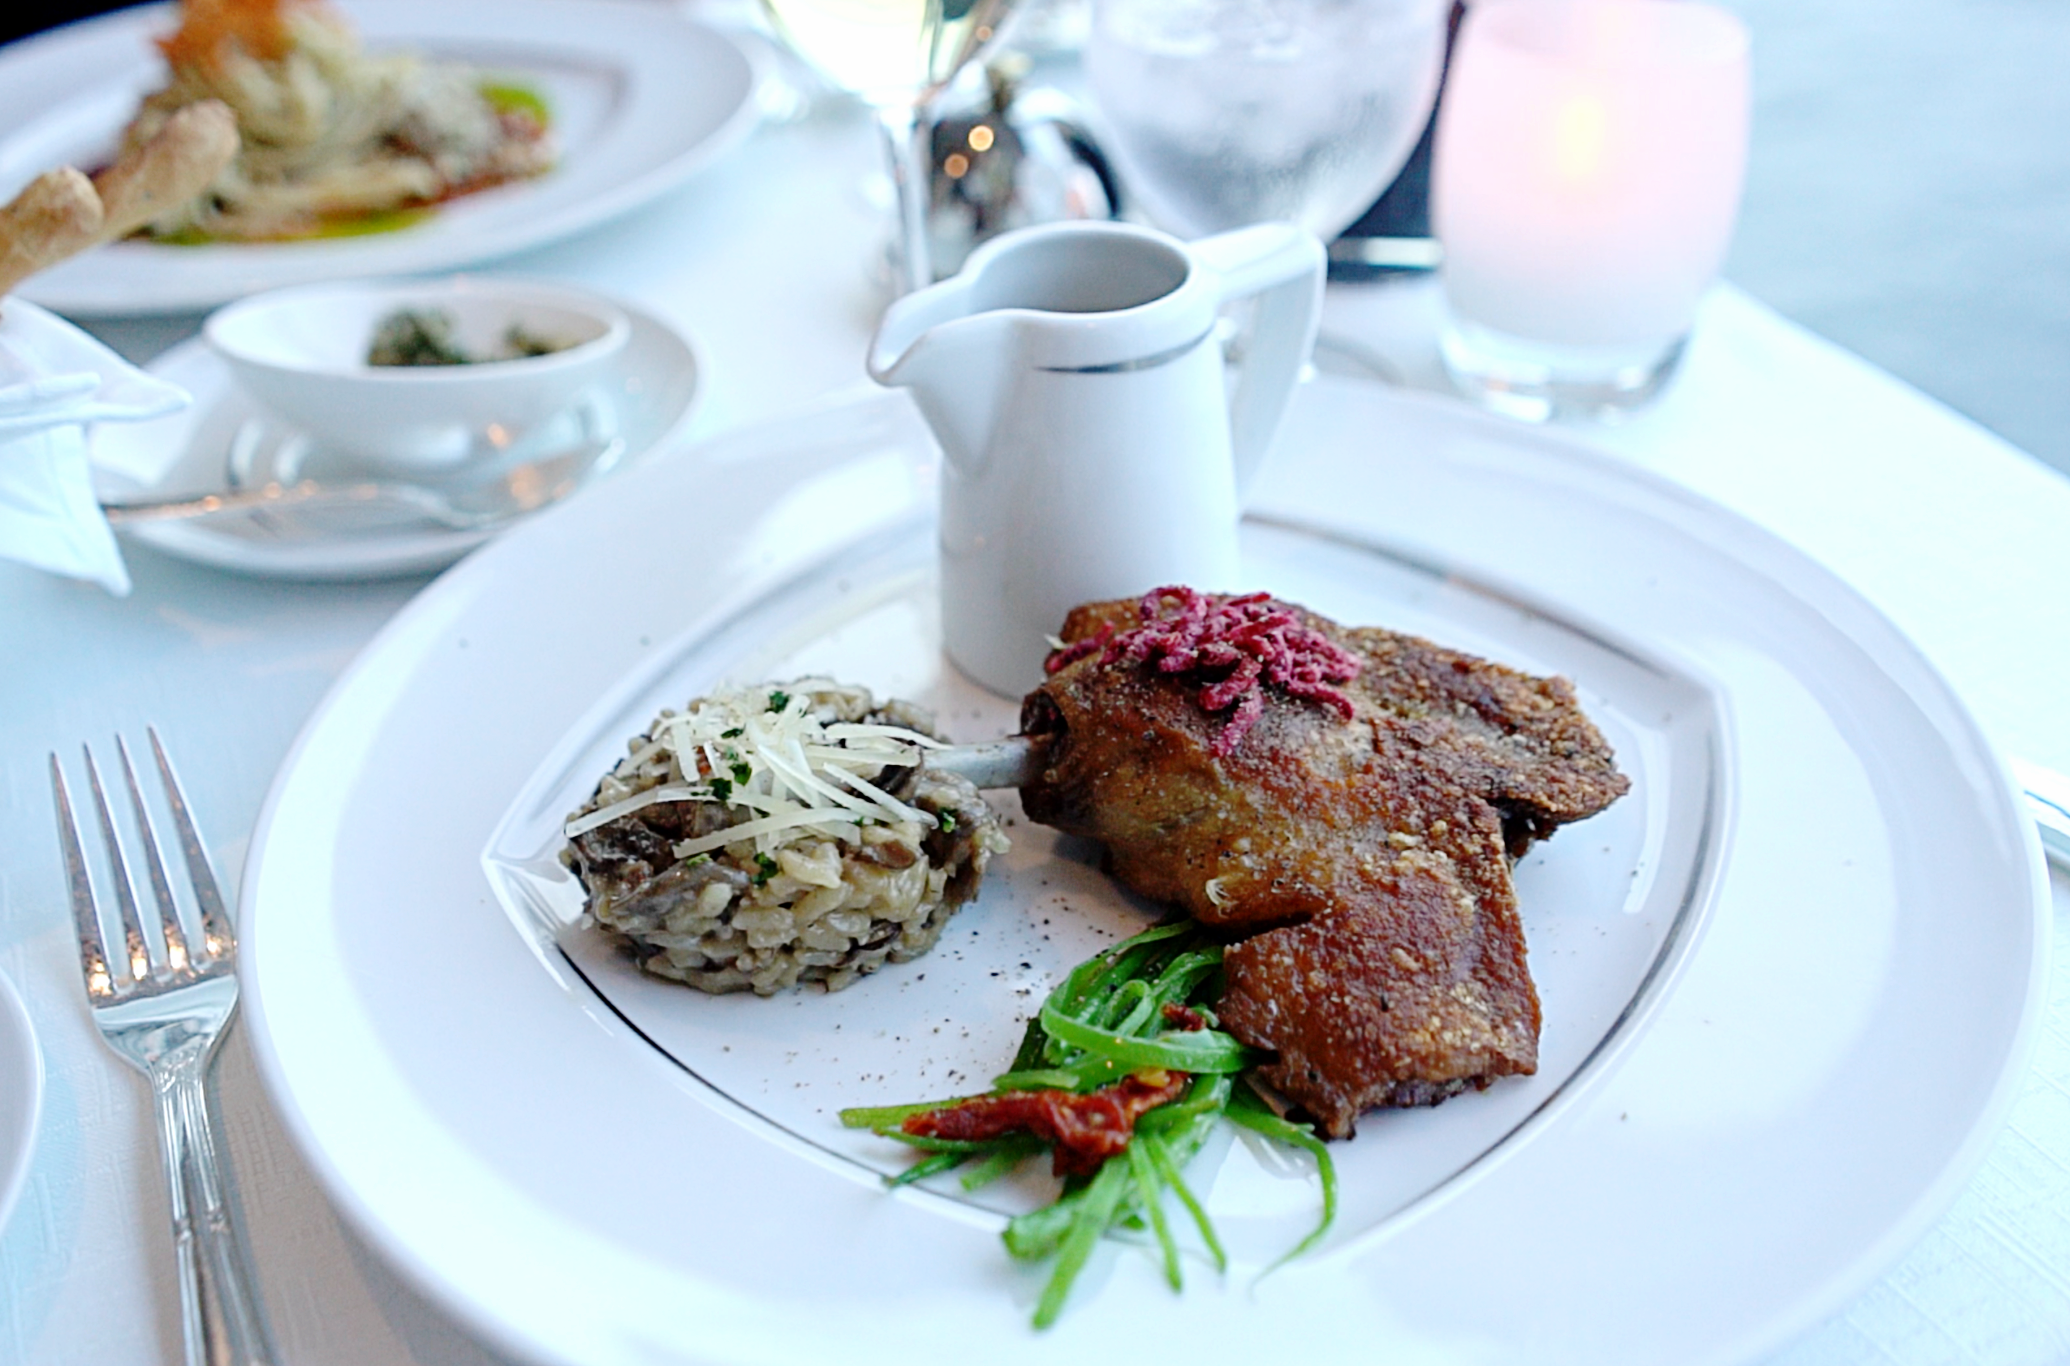 The mushroom risotto and duck leg confit in the Aqualina restaurant.